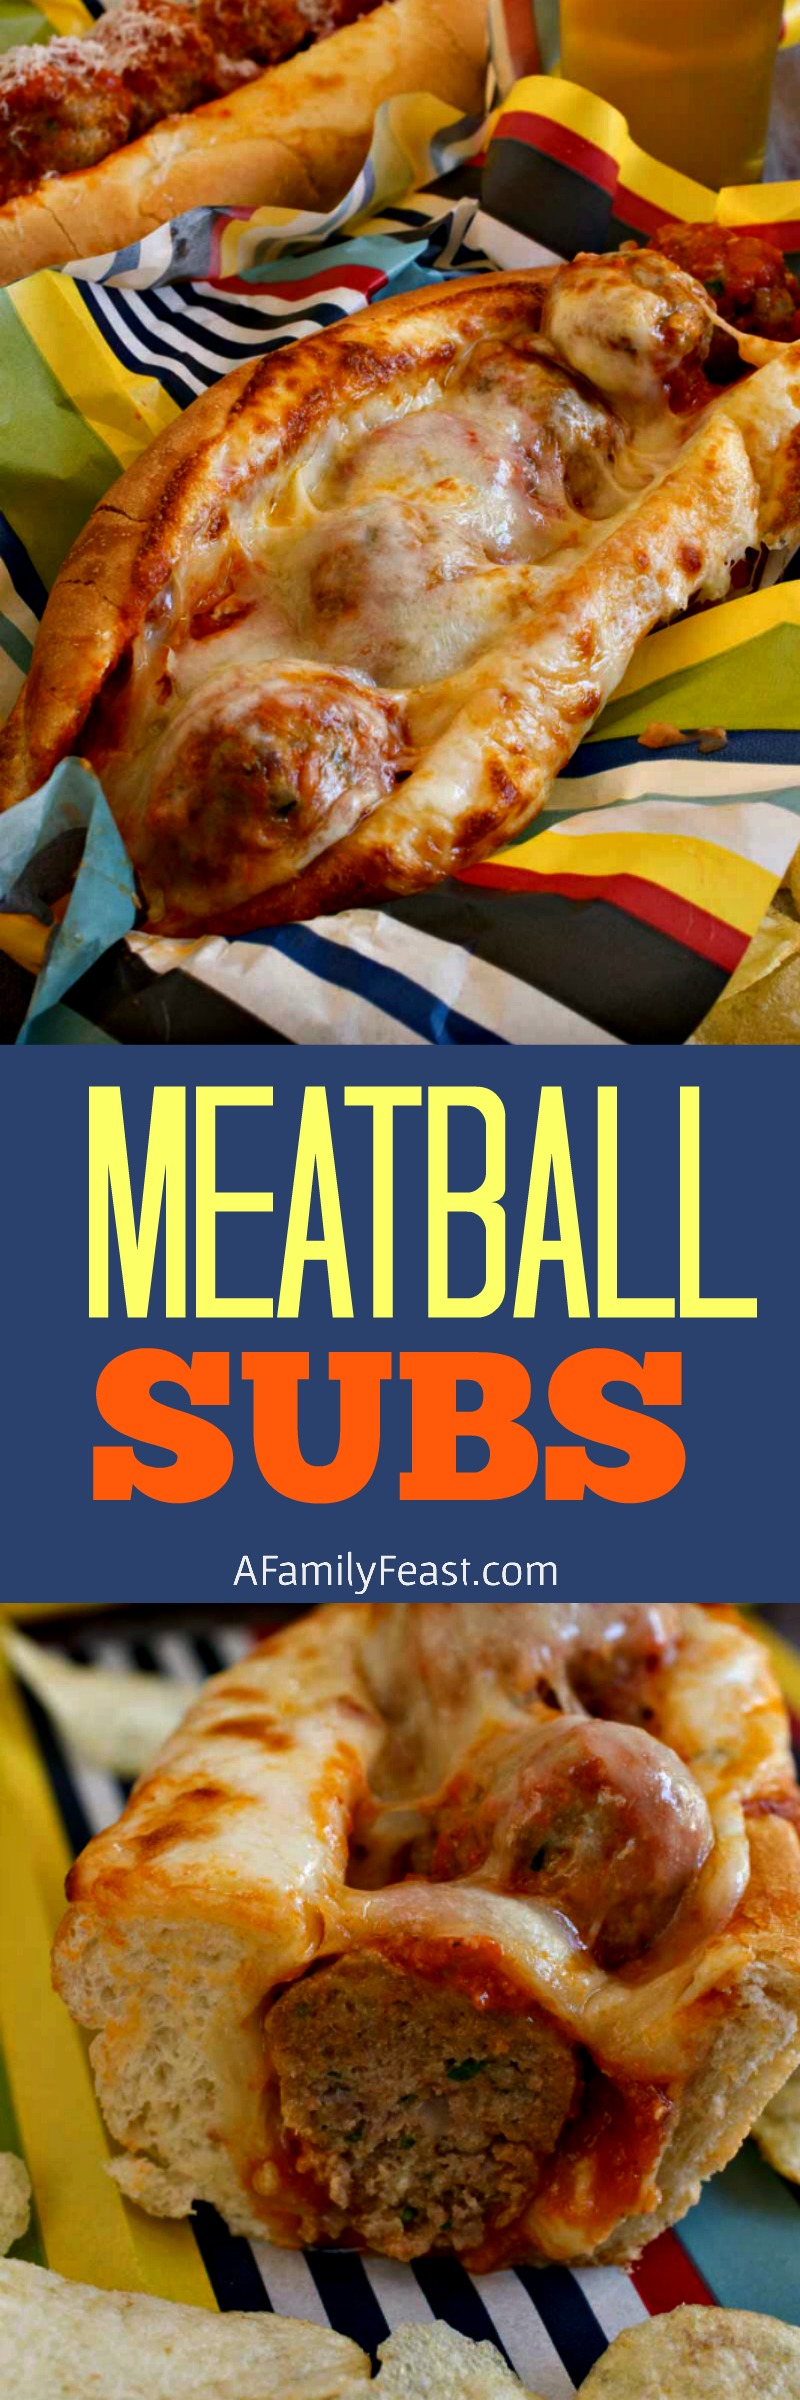 Meatball Subs A Family Feast